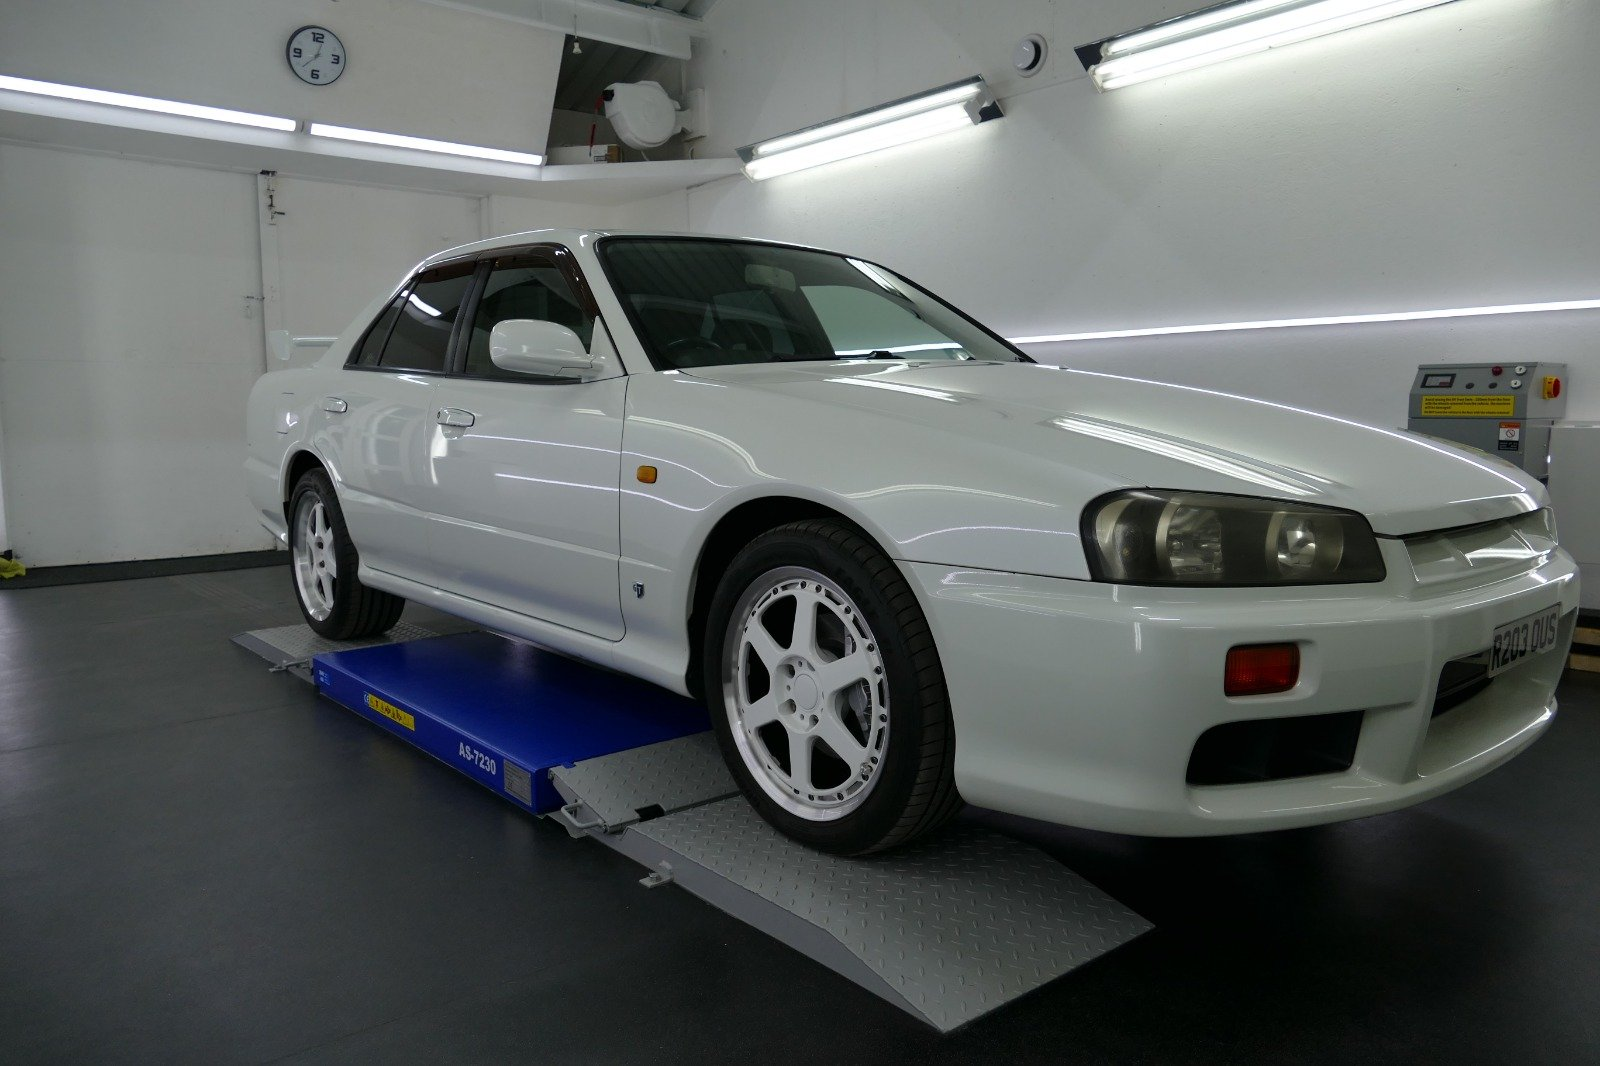 1998 Nissan Skyline R34 4 door Non Turbo Tiptronic For Sale (picture 1 of 6)